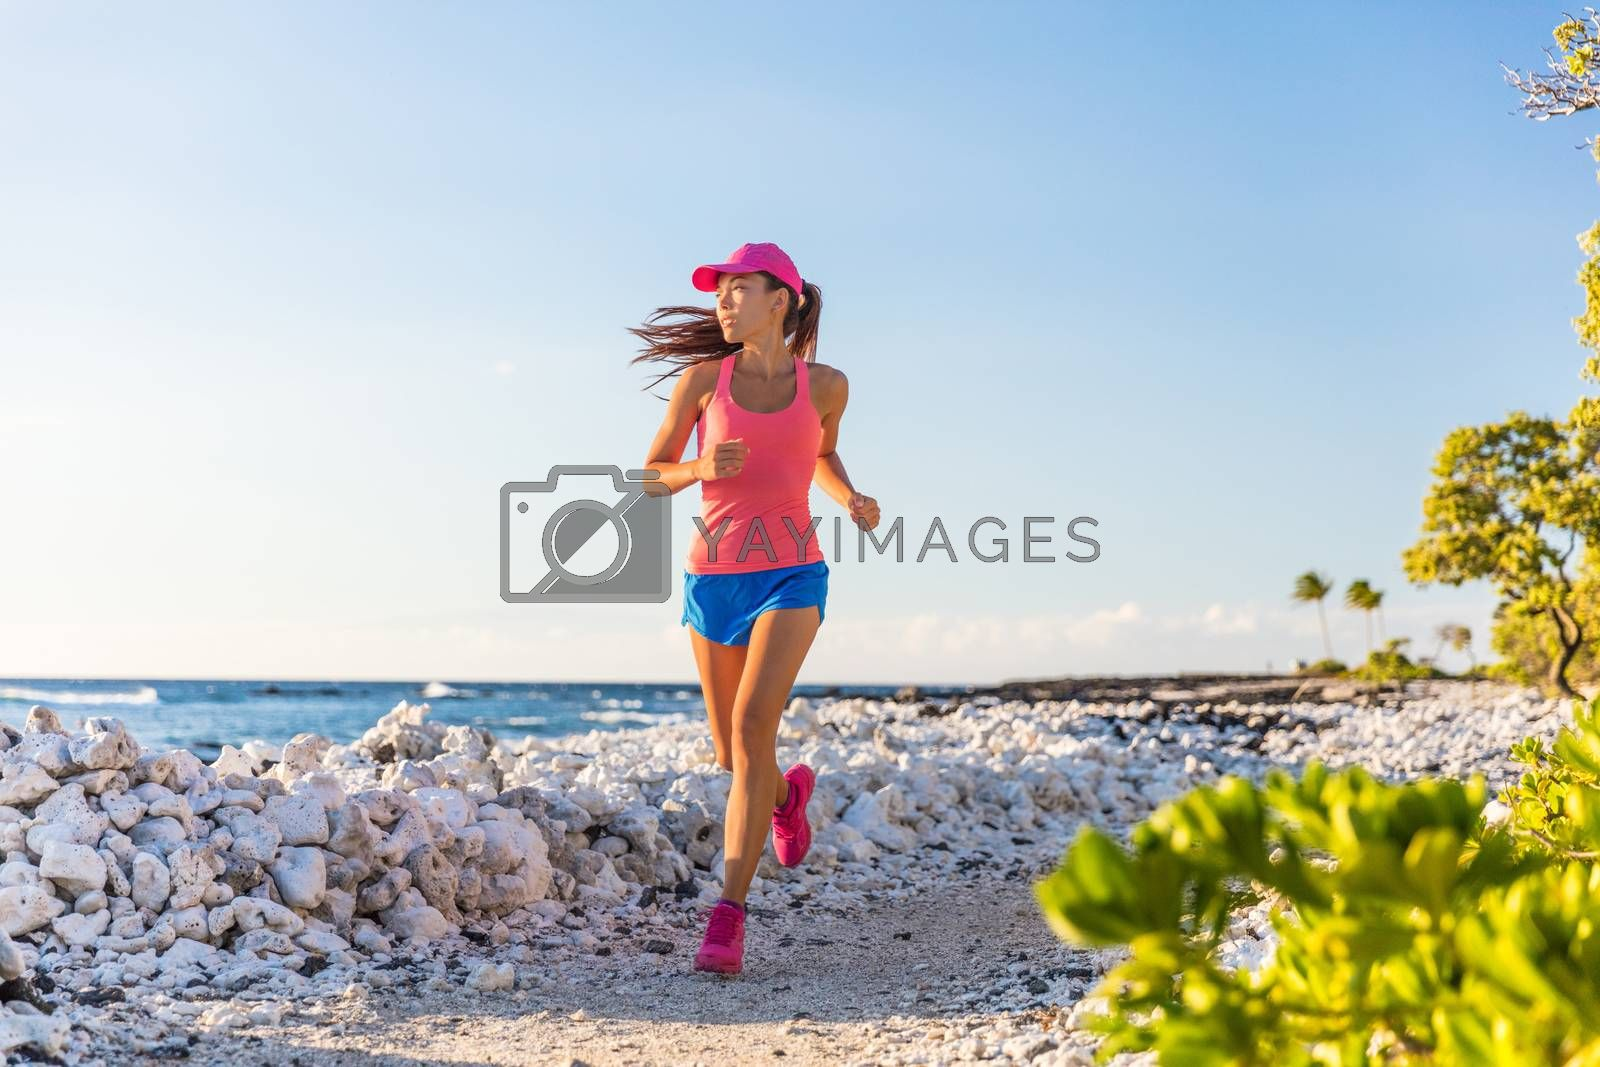 Healthy active runner girl running on beach trail path of coral rocks in Hawaii, morning training alone by Maridav